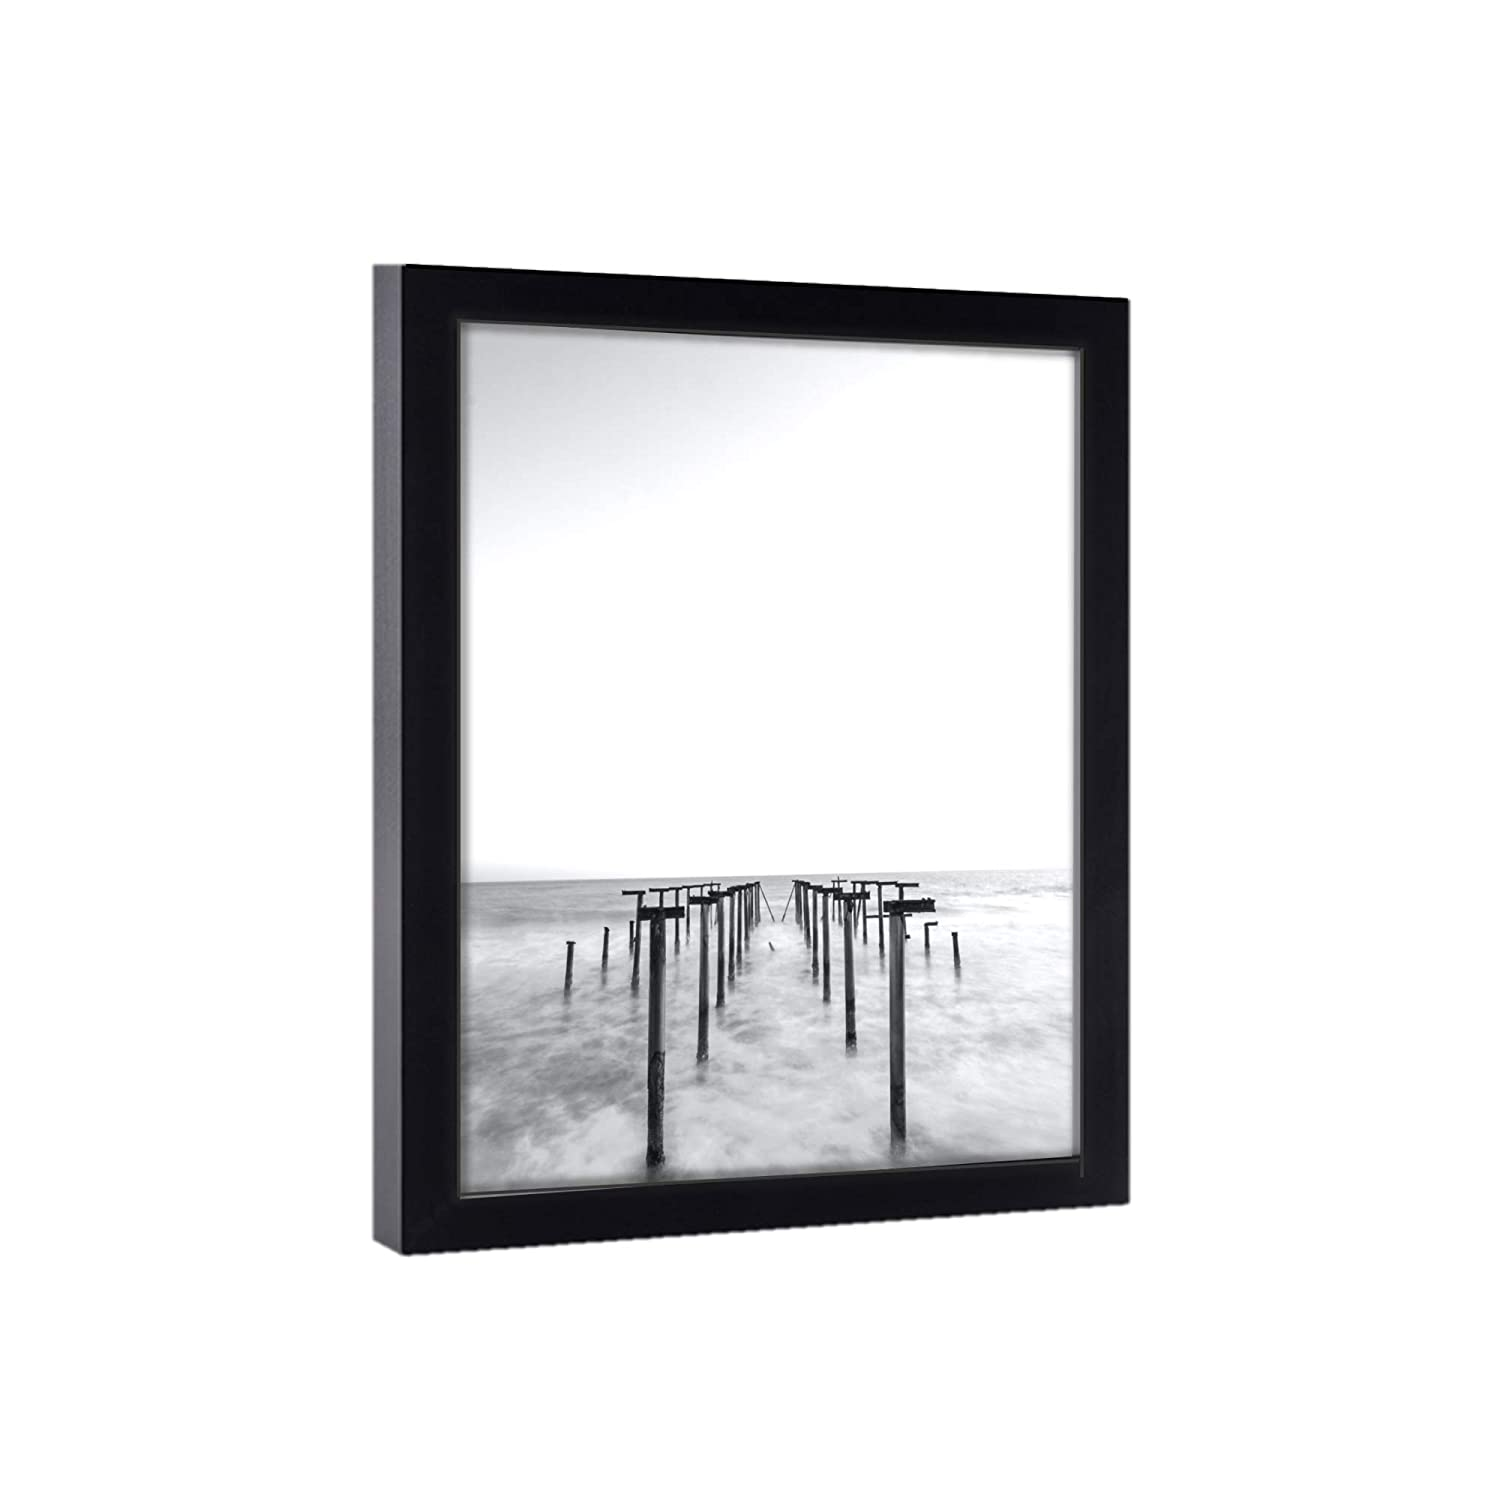 23x39 Black Picture Frames - lowest Free shipping on posting reviews price Ready Hang Wood Poste Pine Solid to